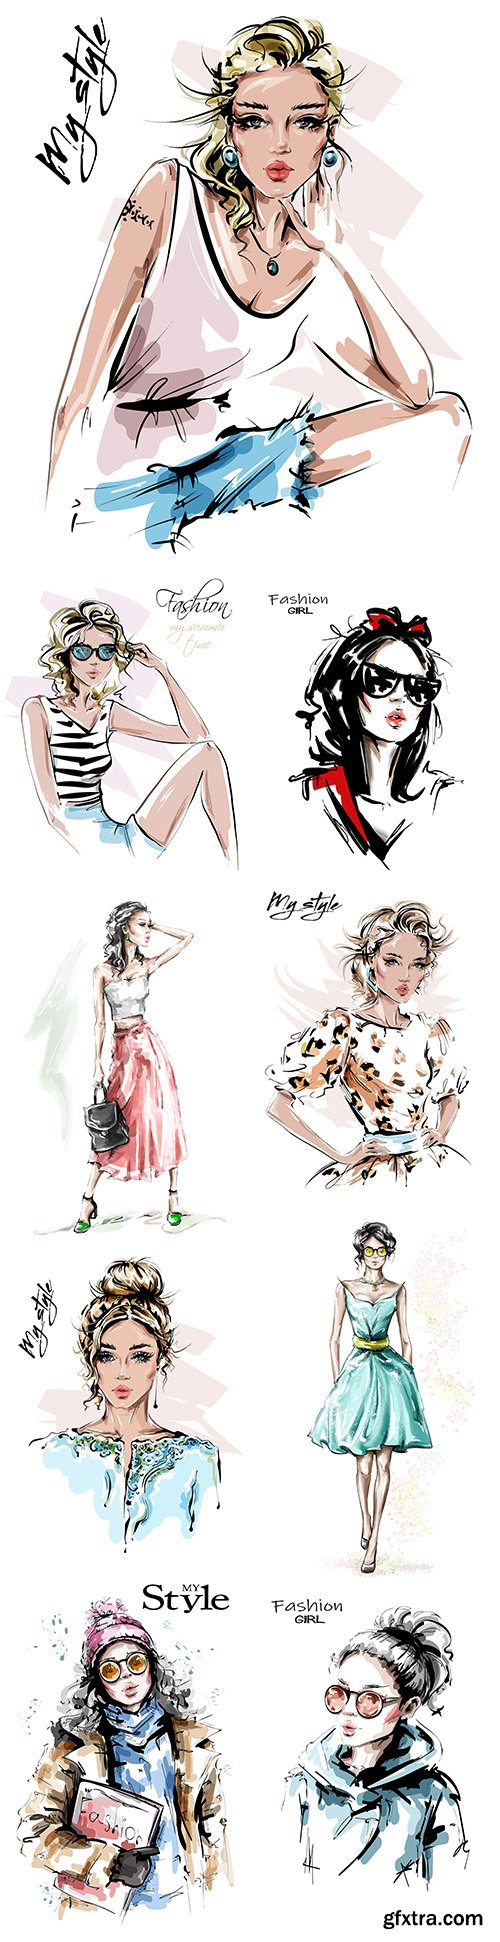 My style Hand drawn beautiful young and fashion girl 6